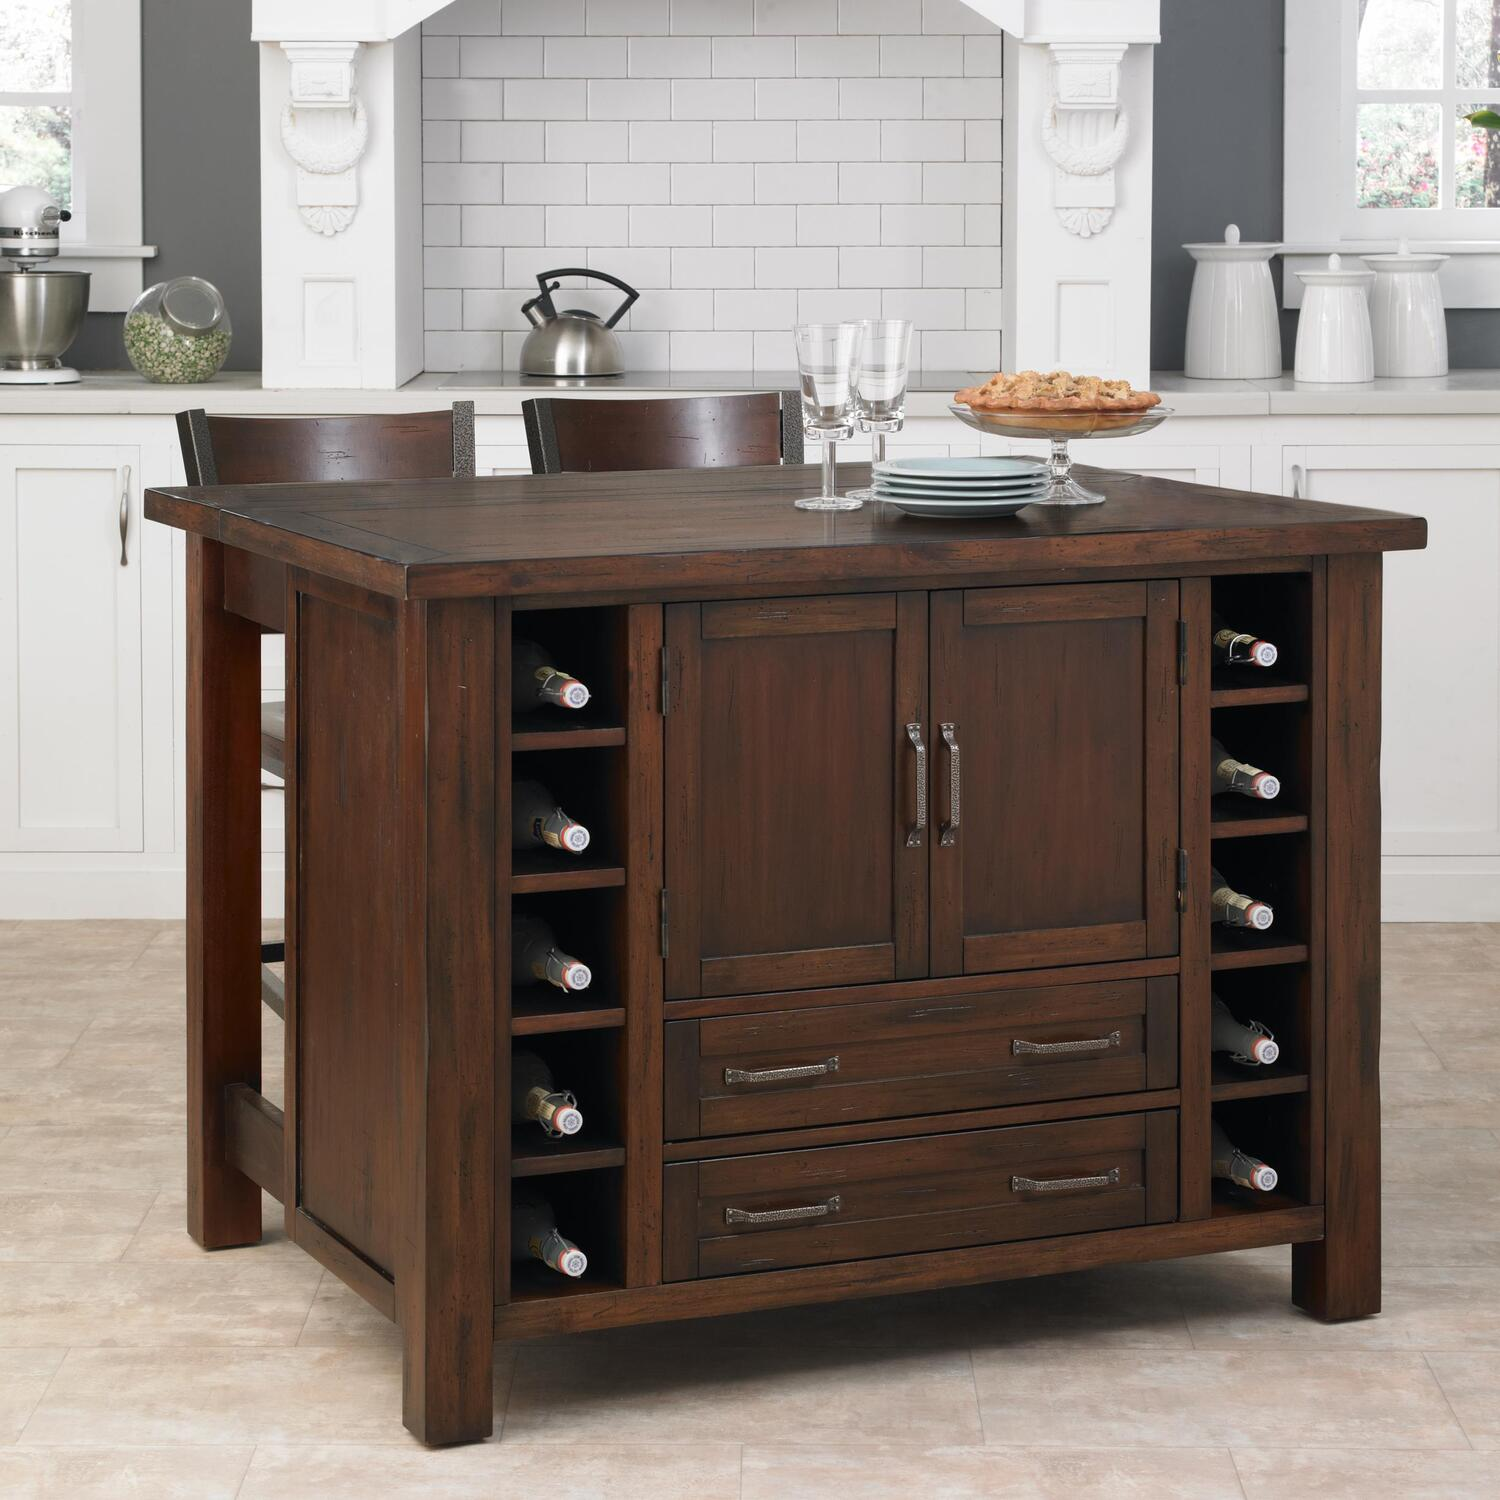 Home Styles Cabin Creek Kitchen Island With Breakfast Bar And Two Stools By Oj Commerce 5410 948